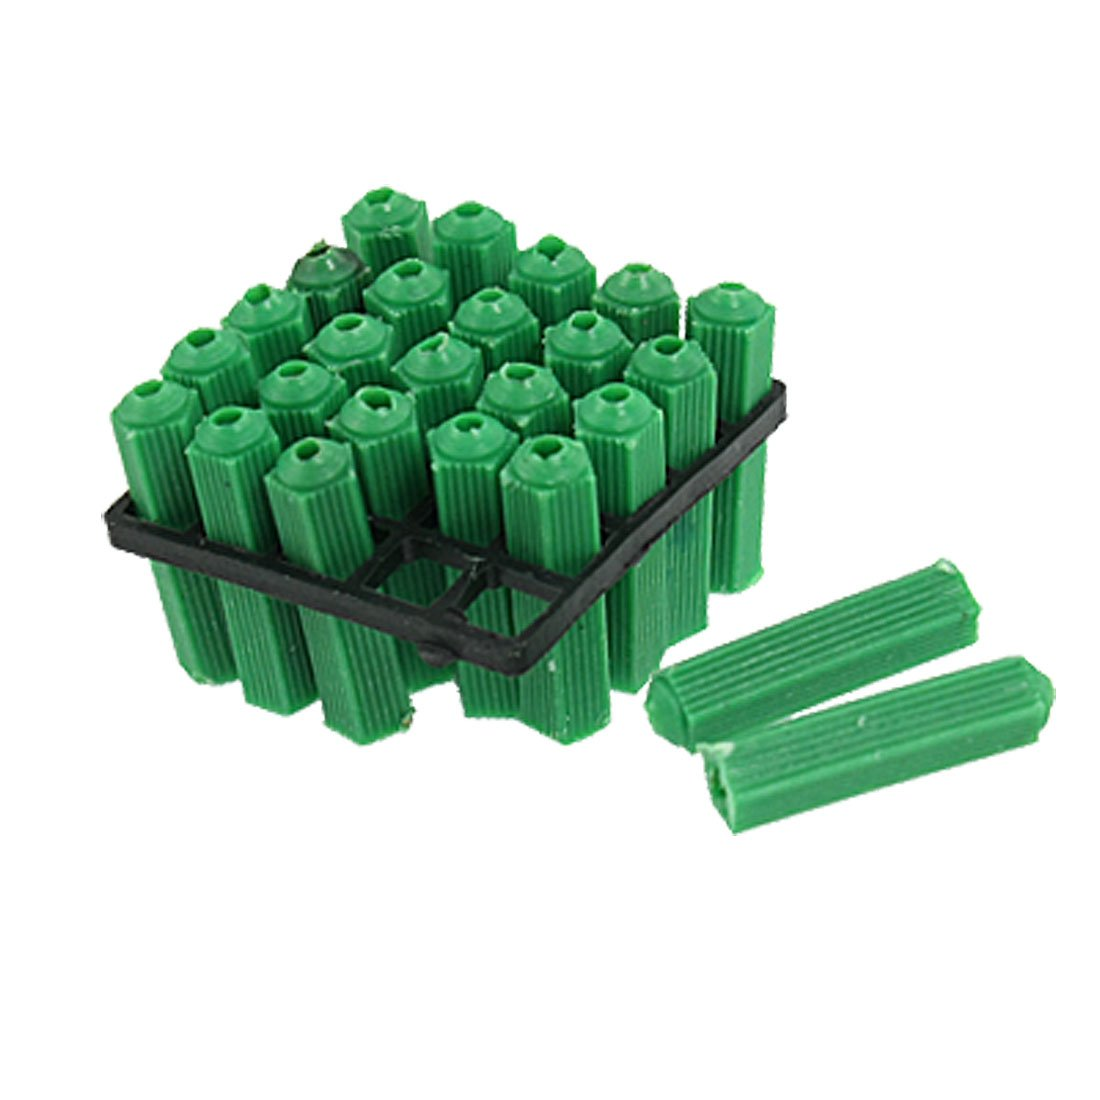 500 x SPRING GRAVITY TOGGLE HOLLOW CAVITY WALL FIXING 50 X 6 X 100MM